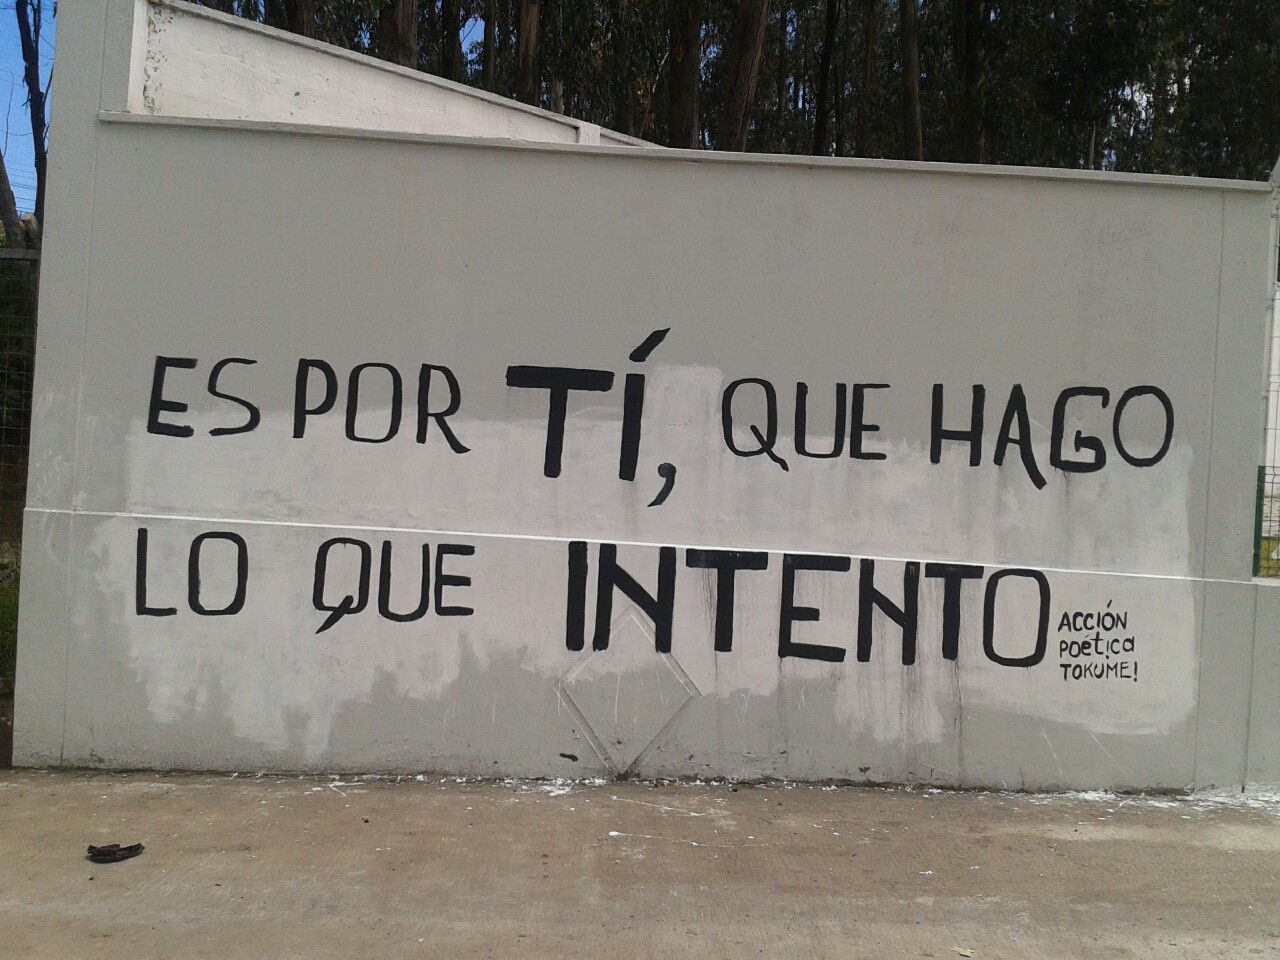 28 images about accion poetica on We Heart It